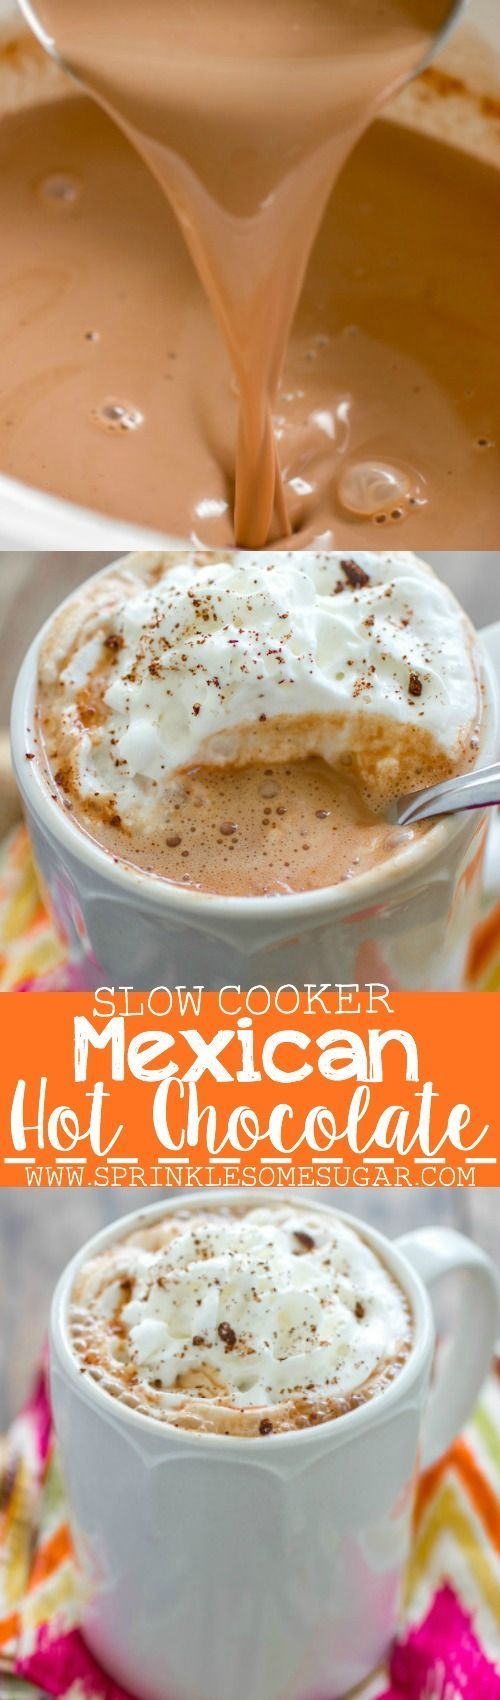 203 best Hot Chocolate Madness images on Pinterest | Hot chocolate ...